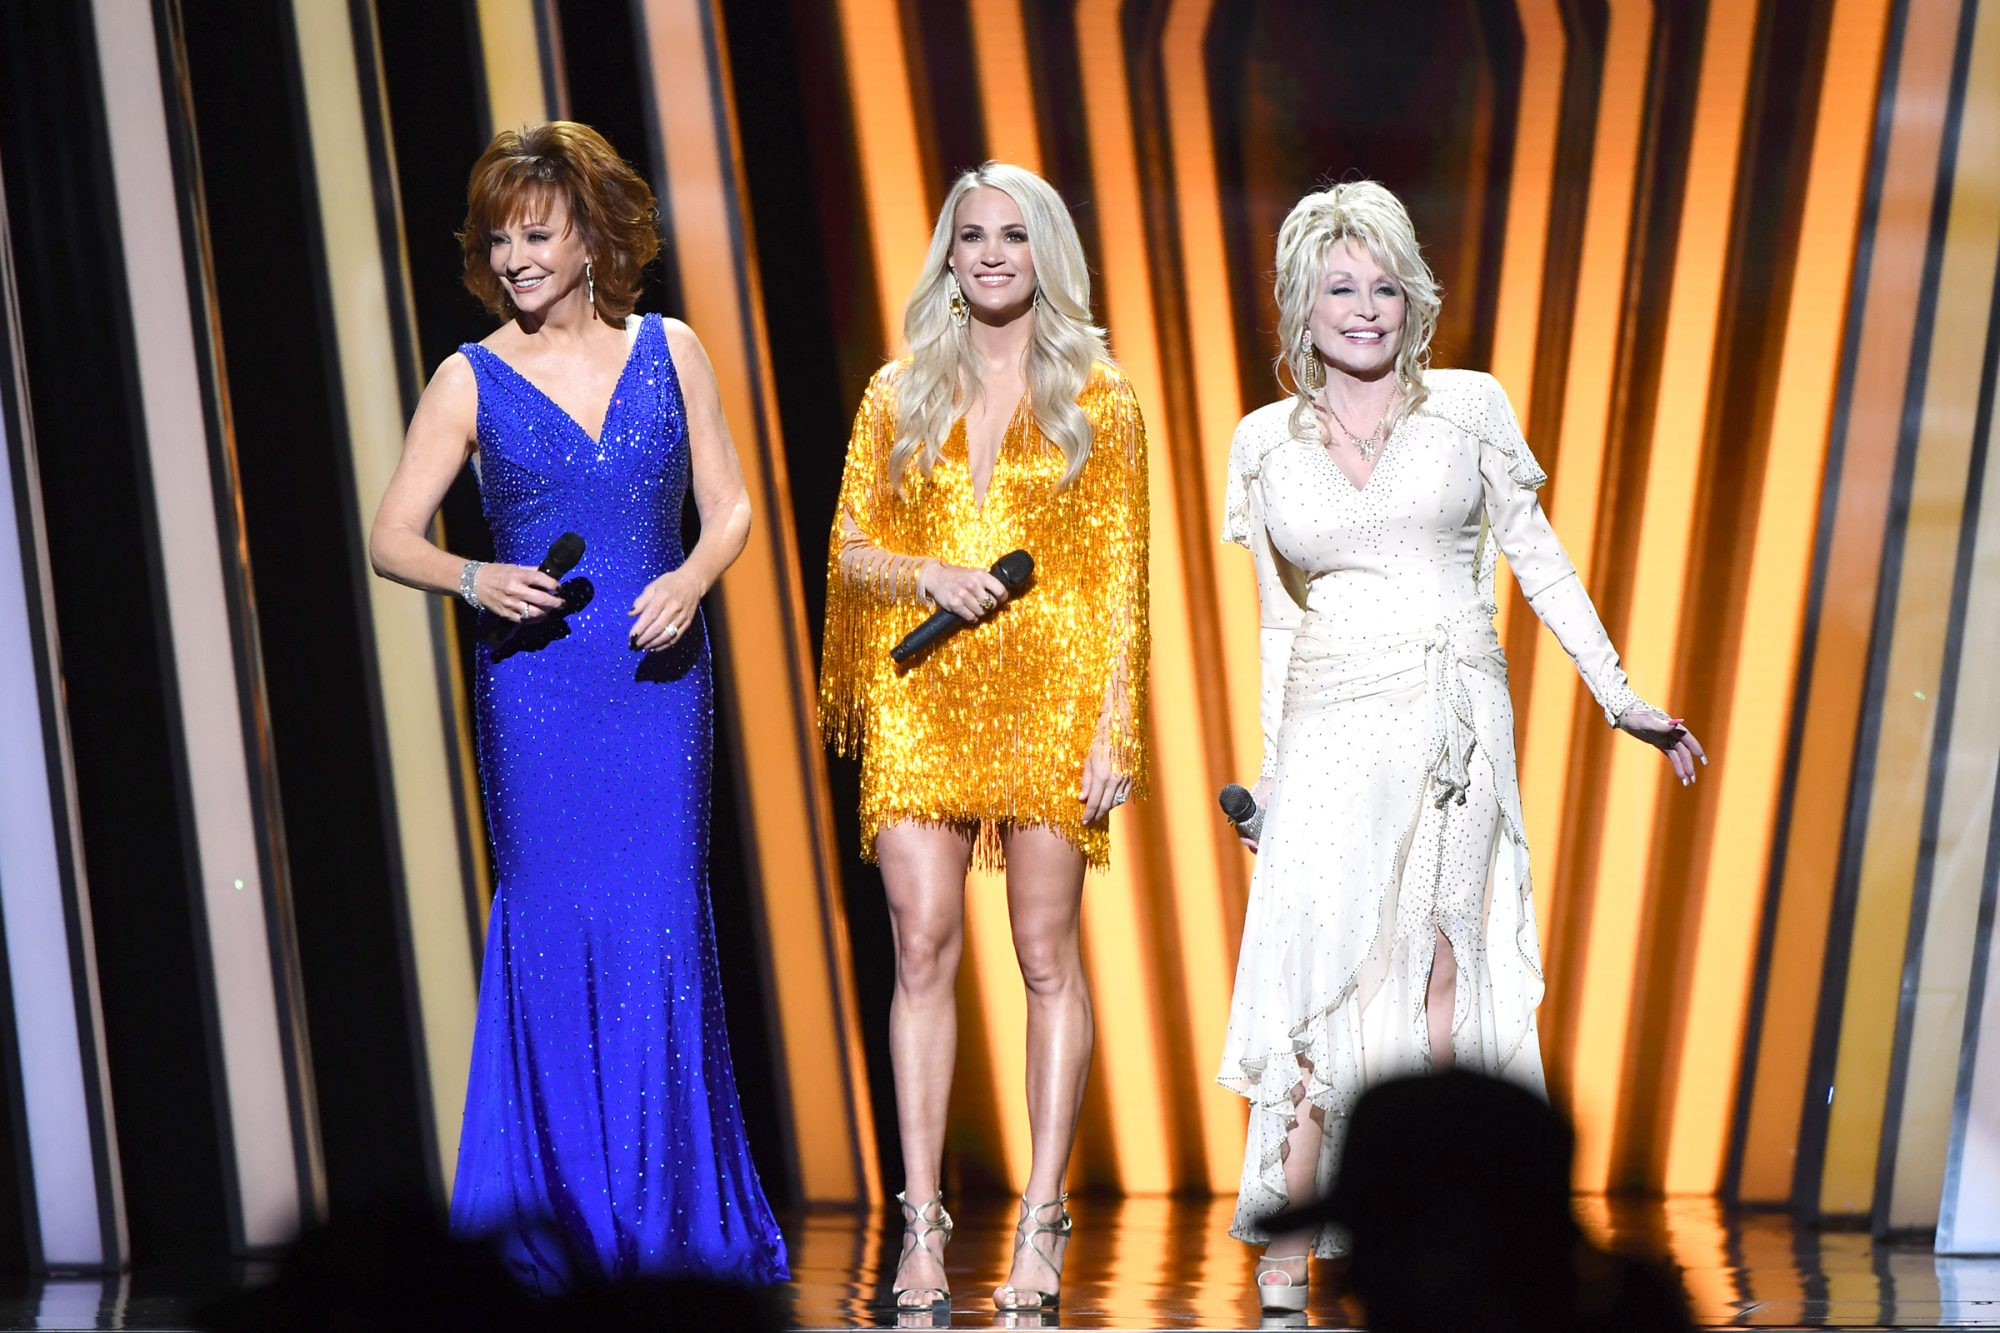 Reba McEntire; Carrie Underwood; Dolly Parton